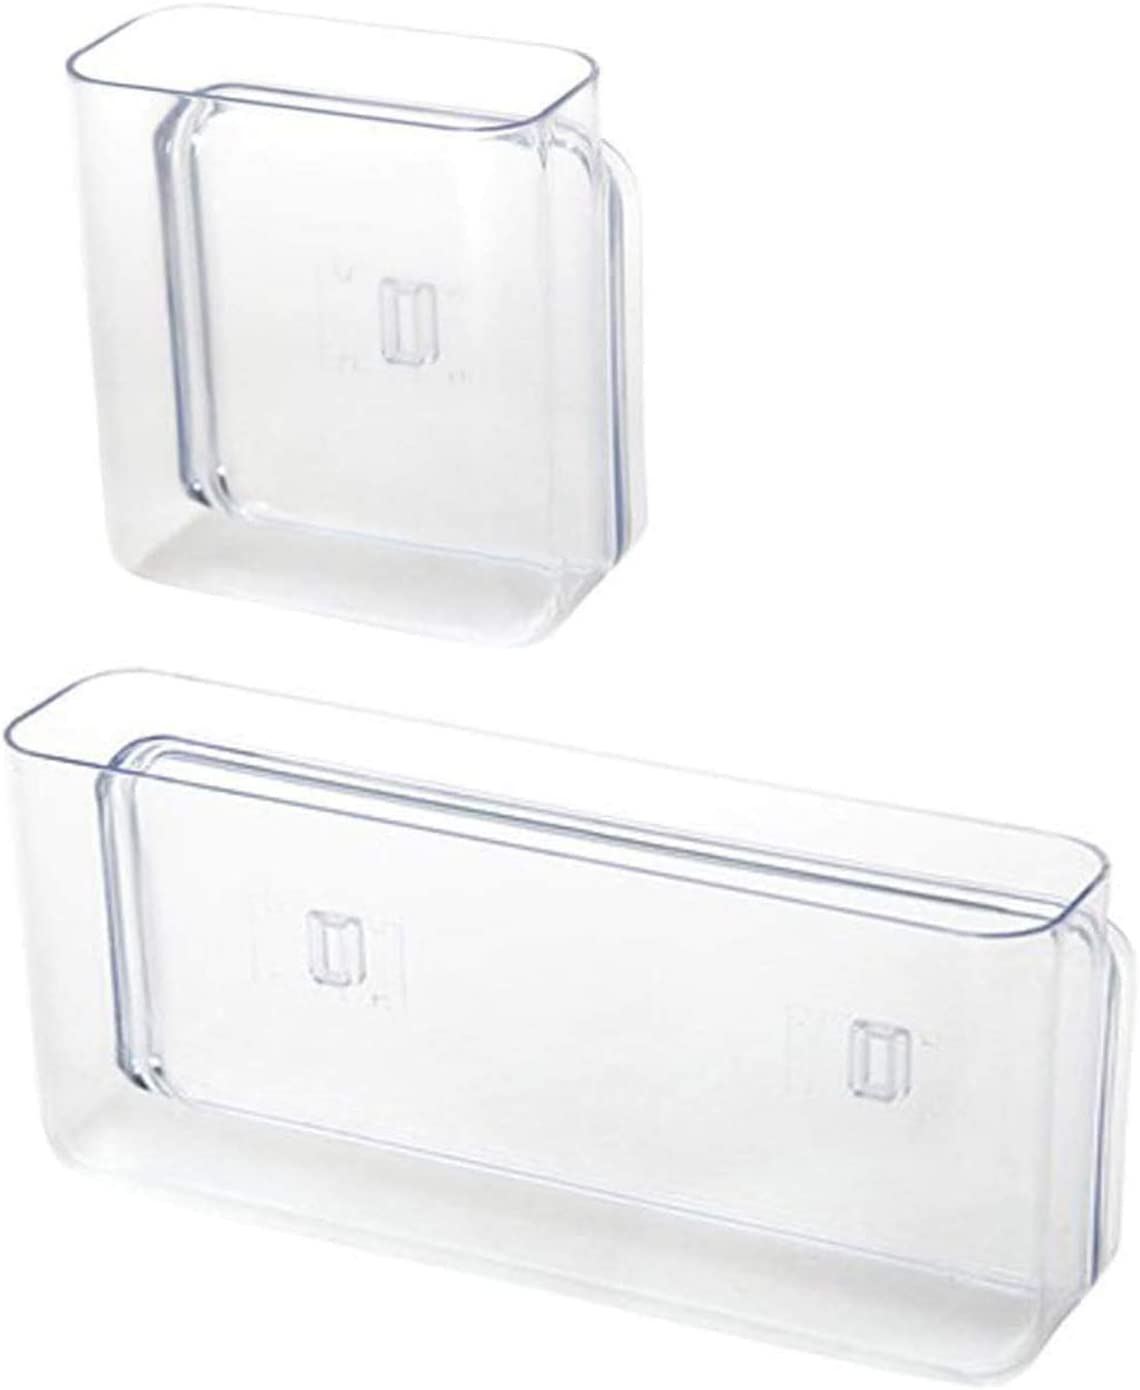 2 Pack Hanging Organizer,Wall-Mounted Plastic Storage Refrigerator or Freezer Food Storage Bins for Home, Kitchen, Bath, Bedroom, and Office